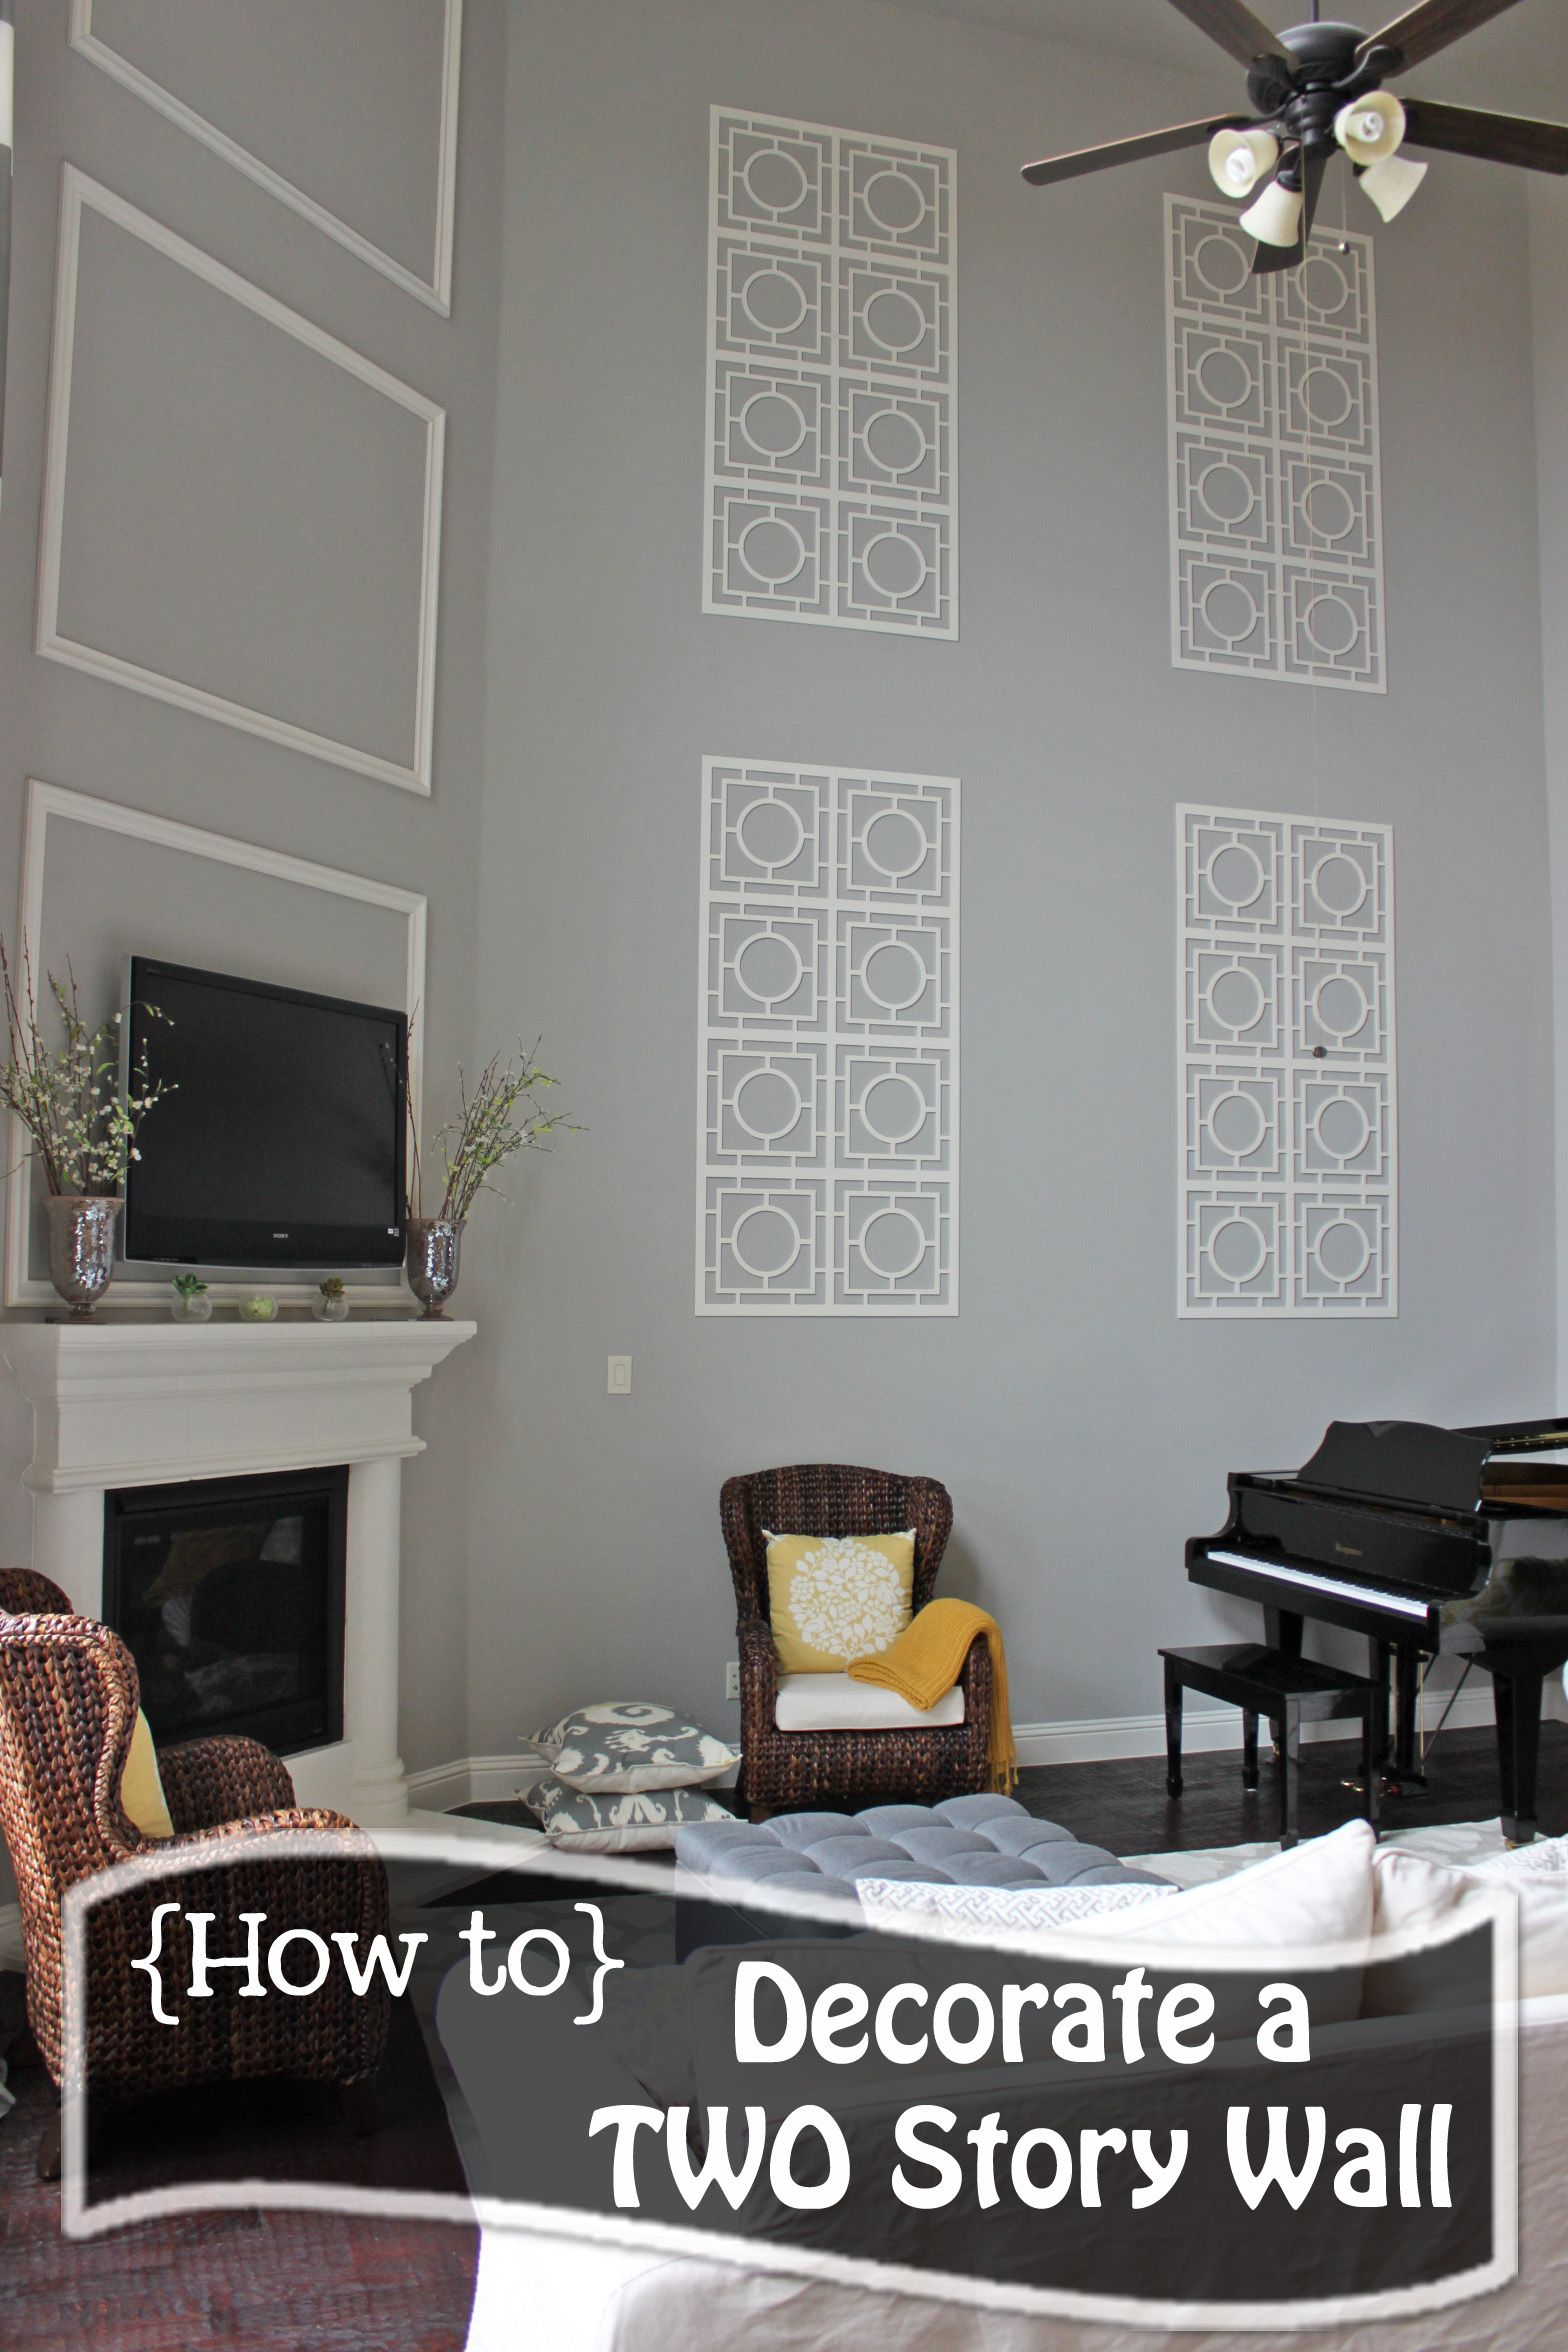 How to decorate a two story wall what to do with those crazy tall how to decorate a two story wall what to do with those crazy tall walls decorating amipublicfo Image collections